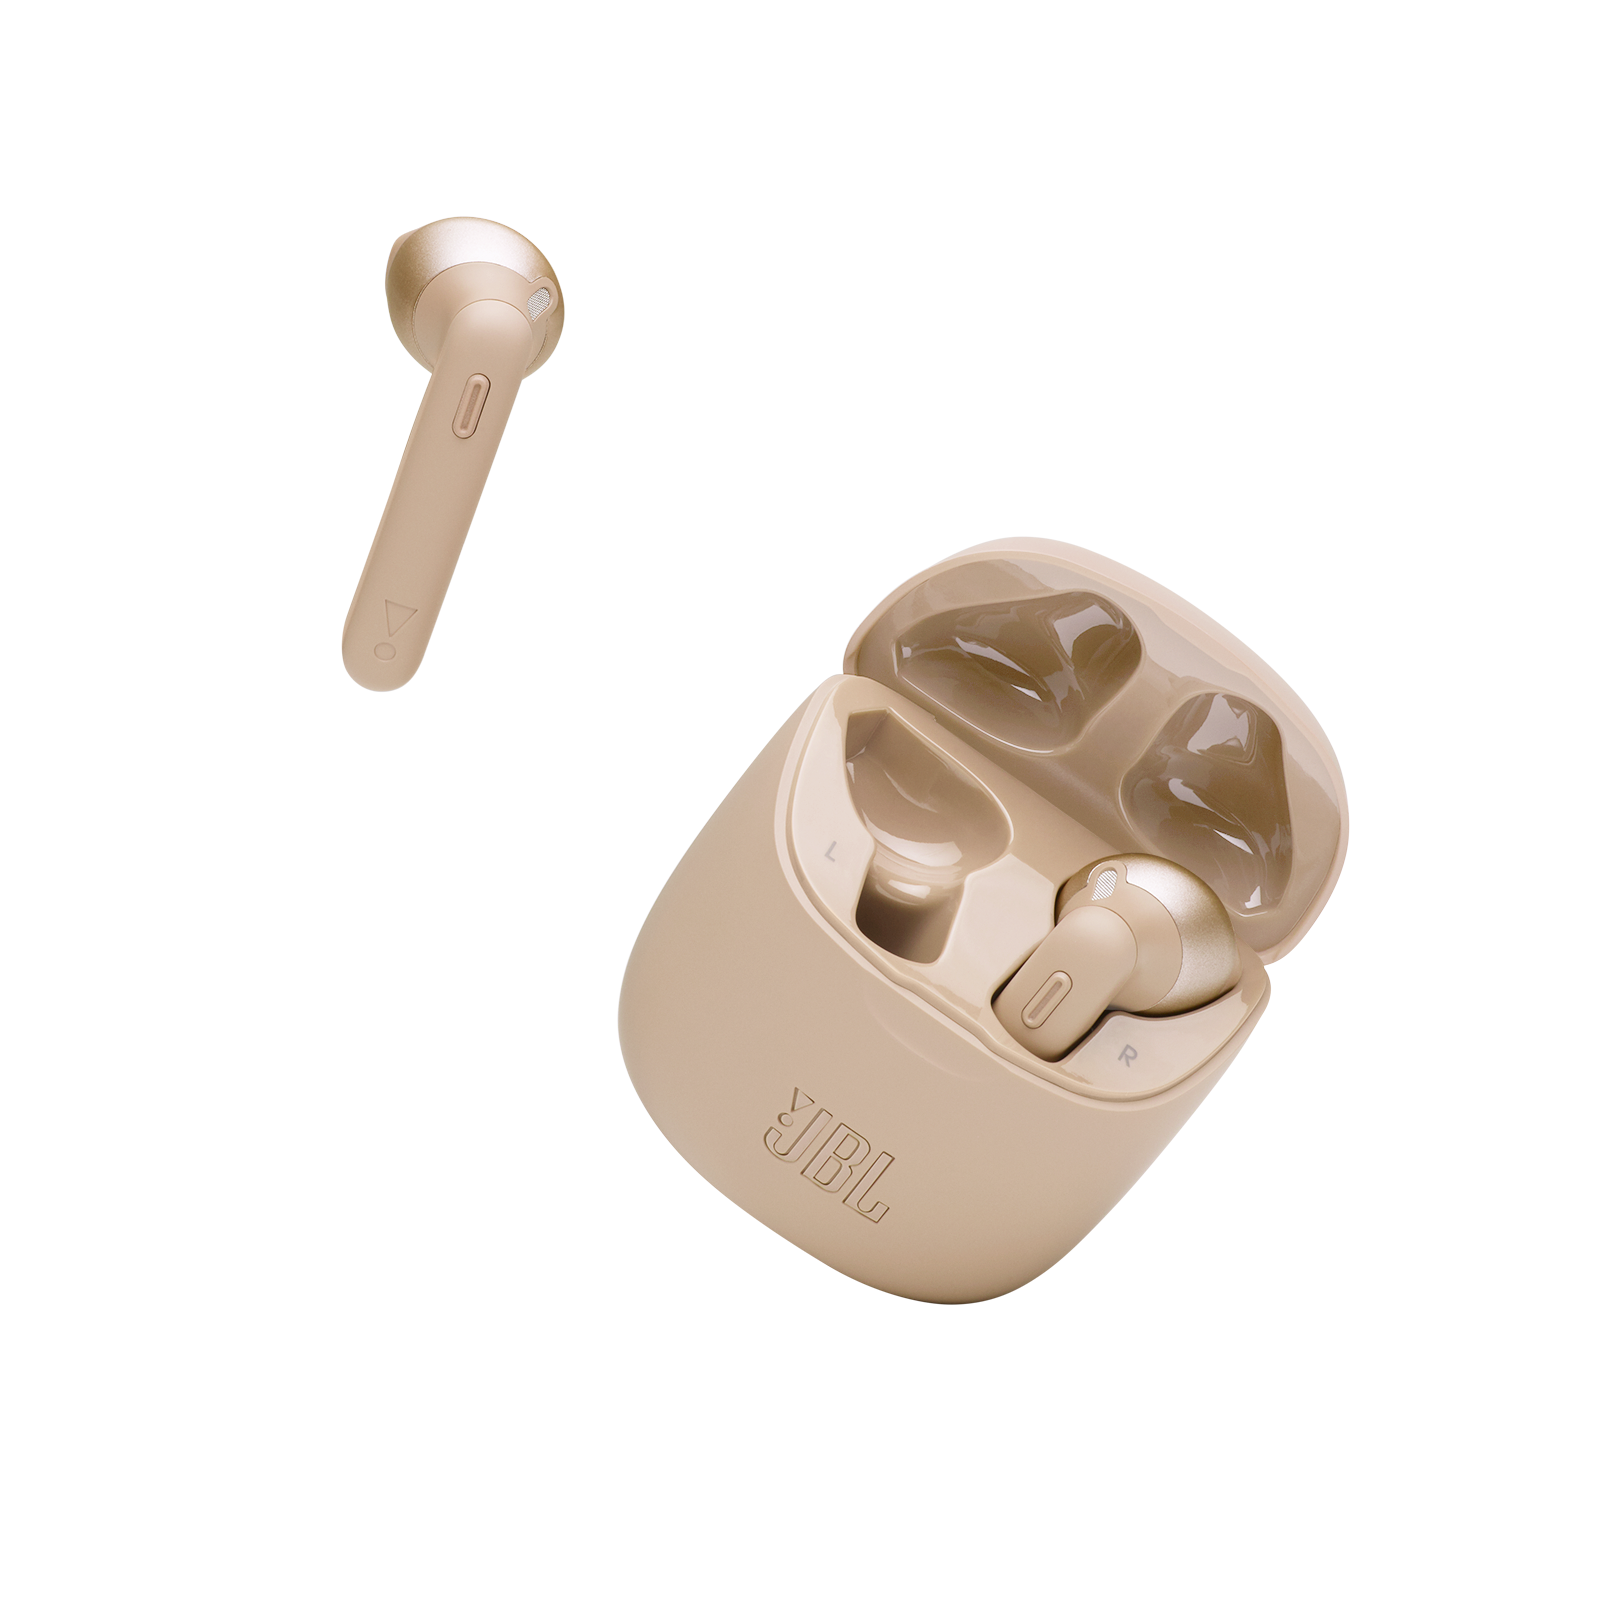 JBL Tune 225TWS - Gold - True wireless earbuds - Detailshot 3